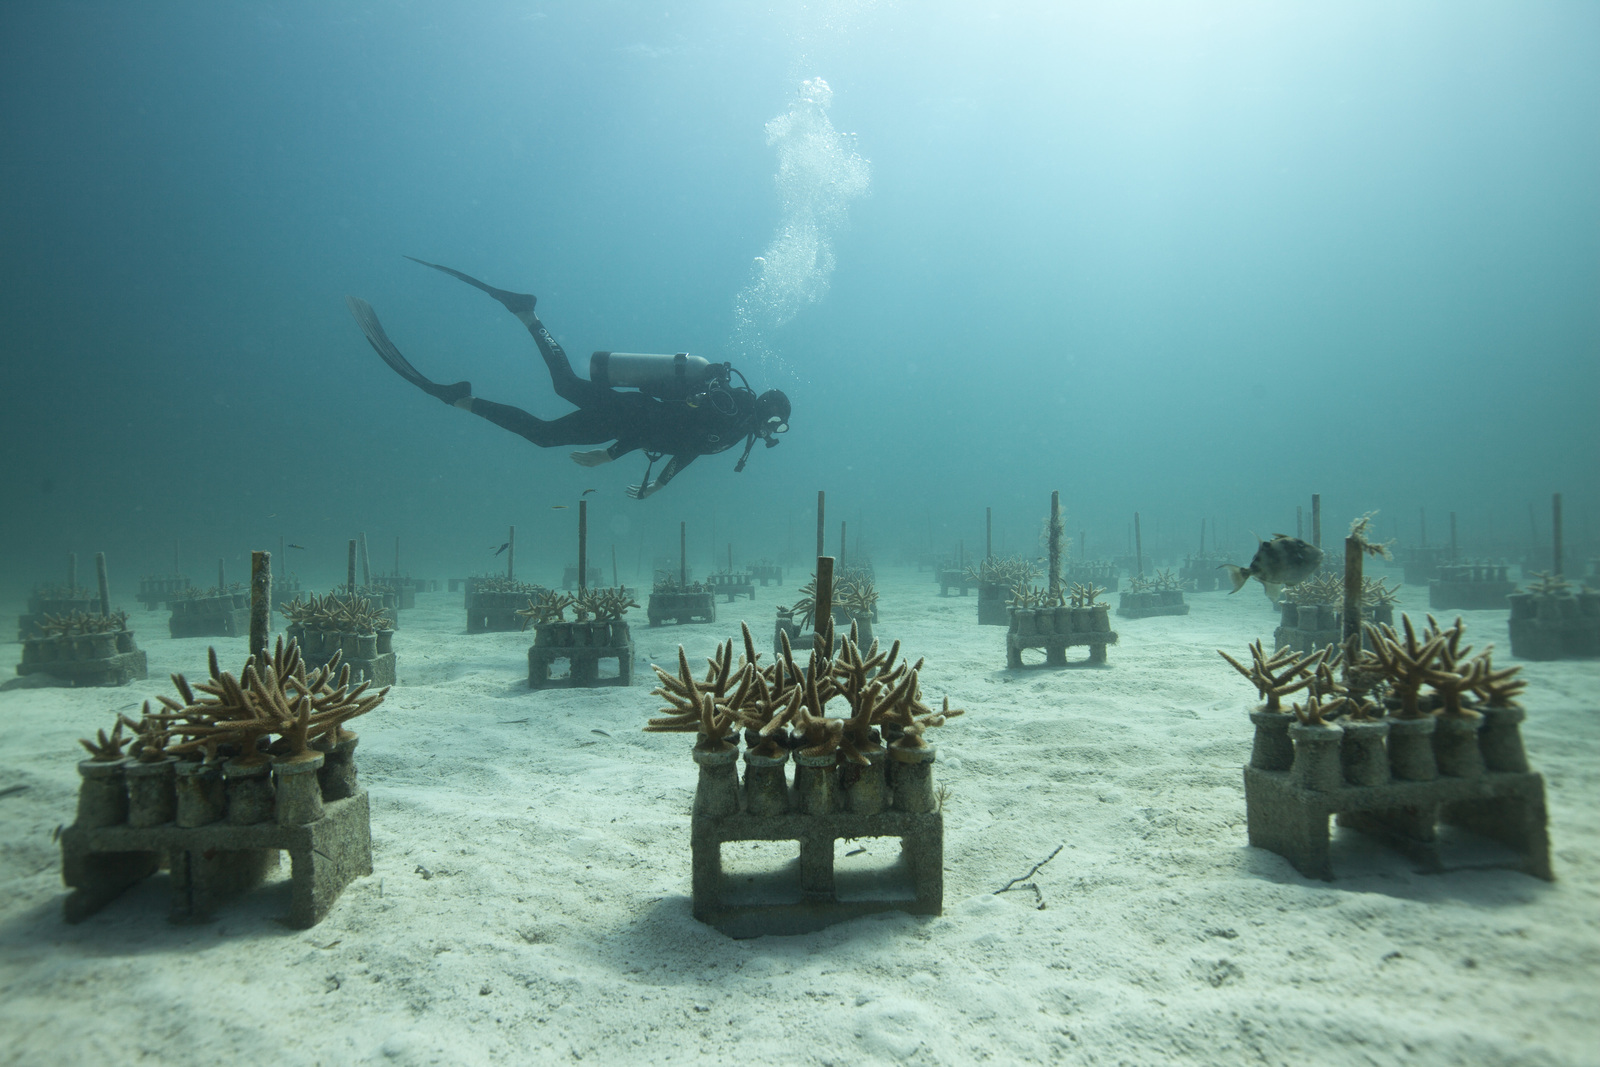 Staghorn coral was once one of the most abundant corals on Caribbean and Floridian reefs. Today, after severe losses due to coral bleaching and disease, it is listed as a threatened species. The Nature Conservancy is working with Ken Nedimyer to grow this species in his underwater nursery (Photo © Tim Calver).